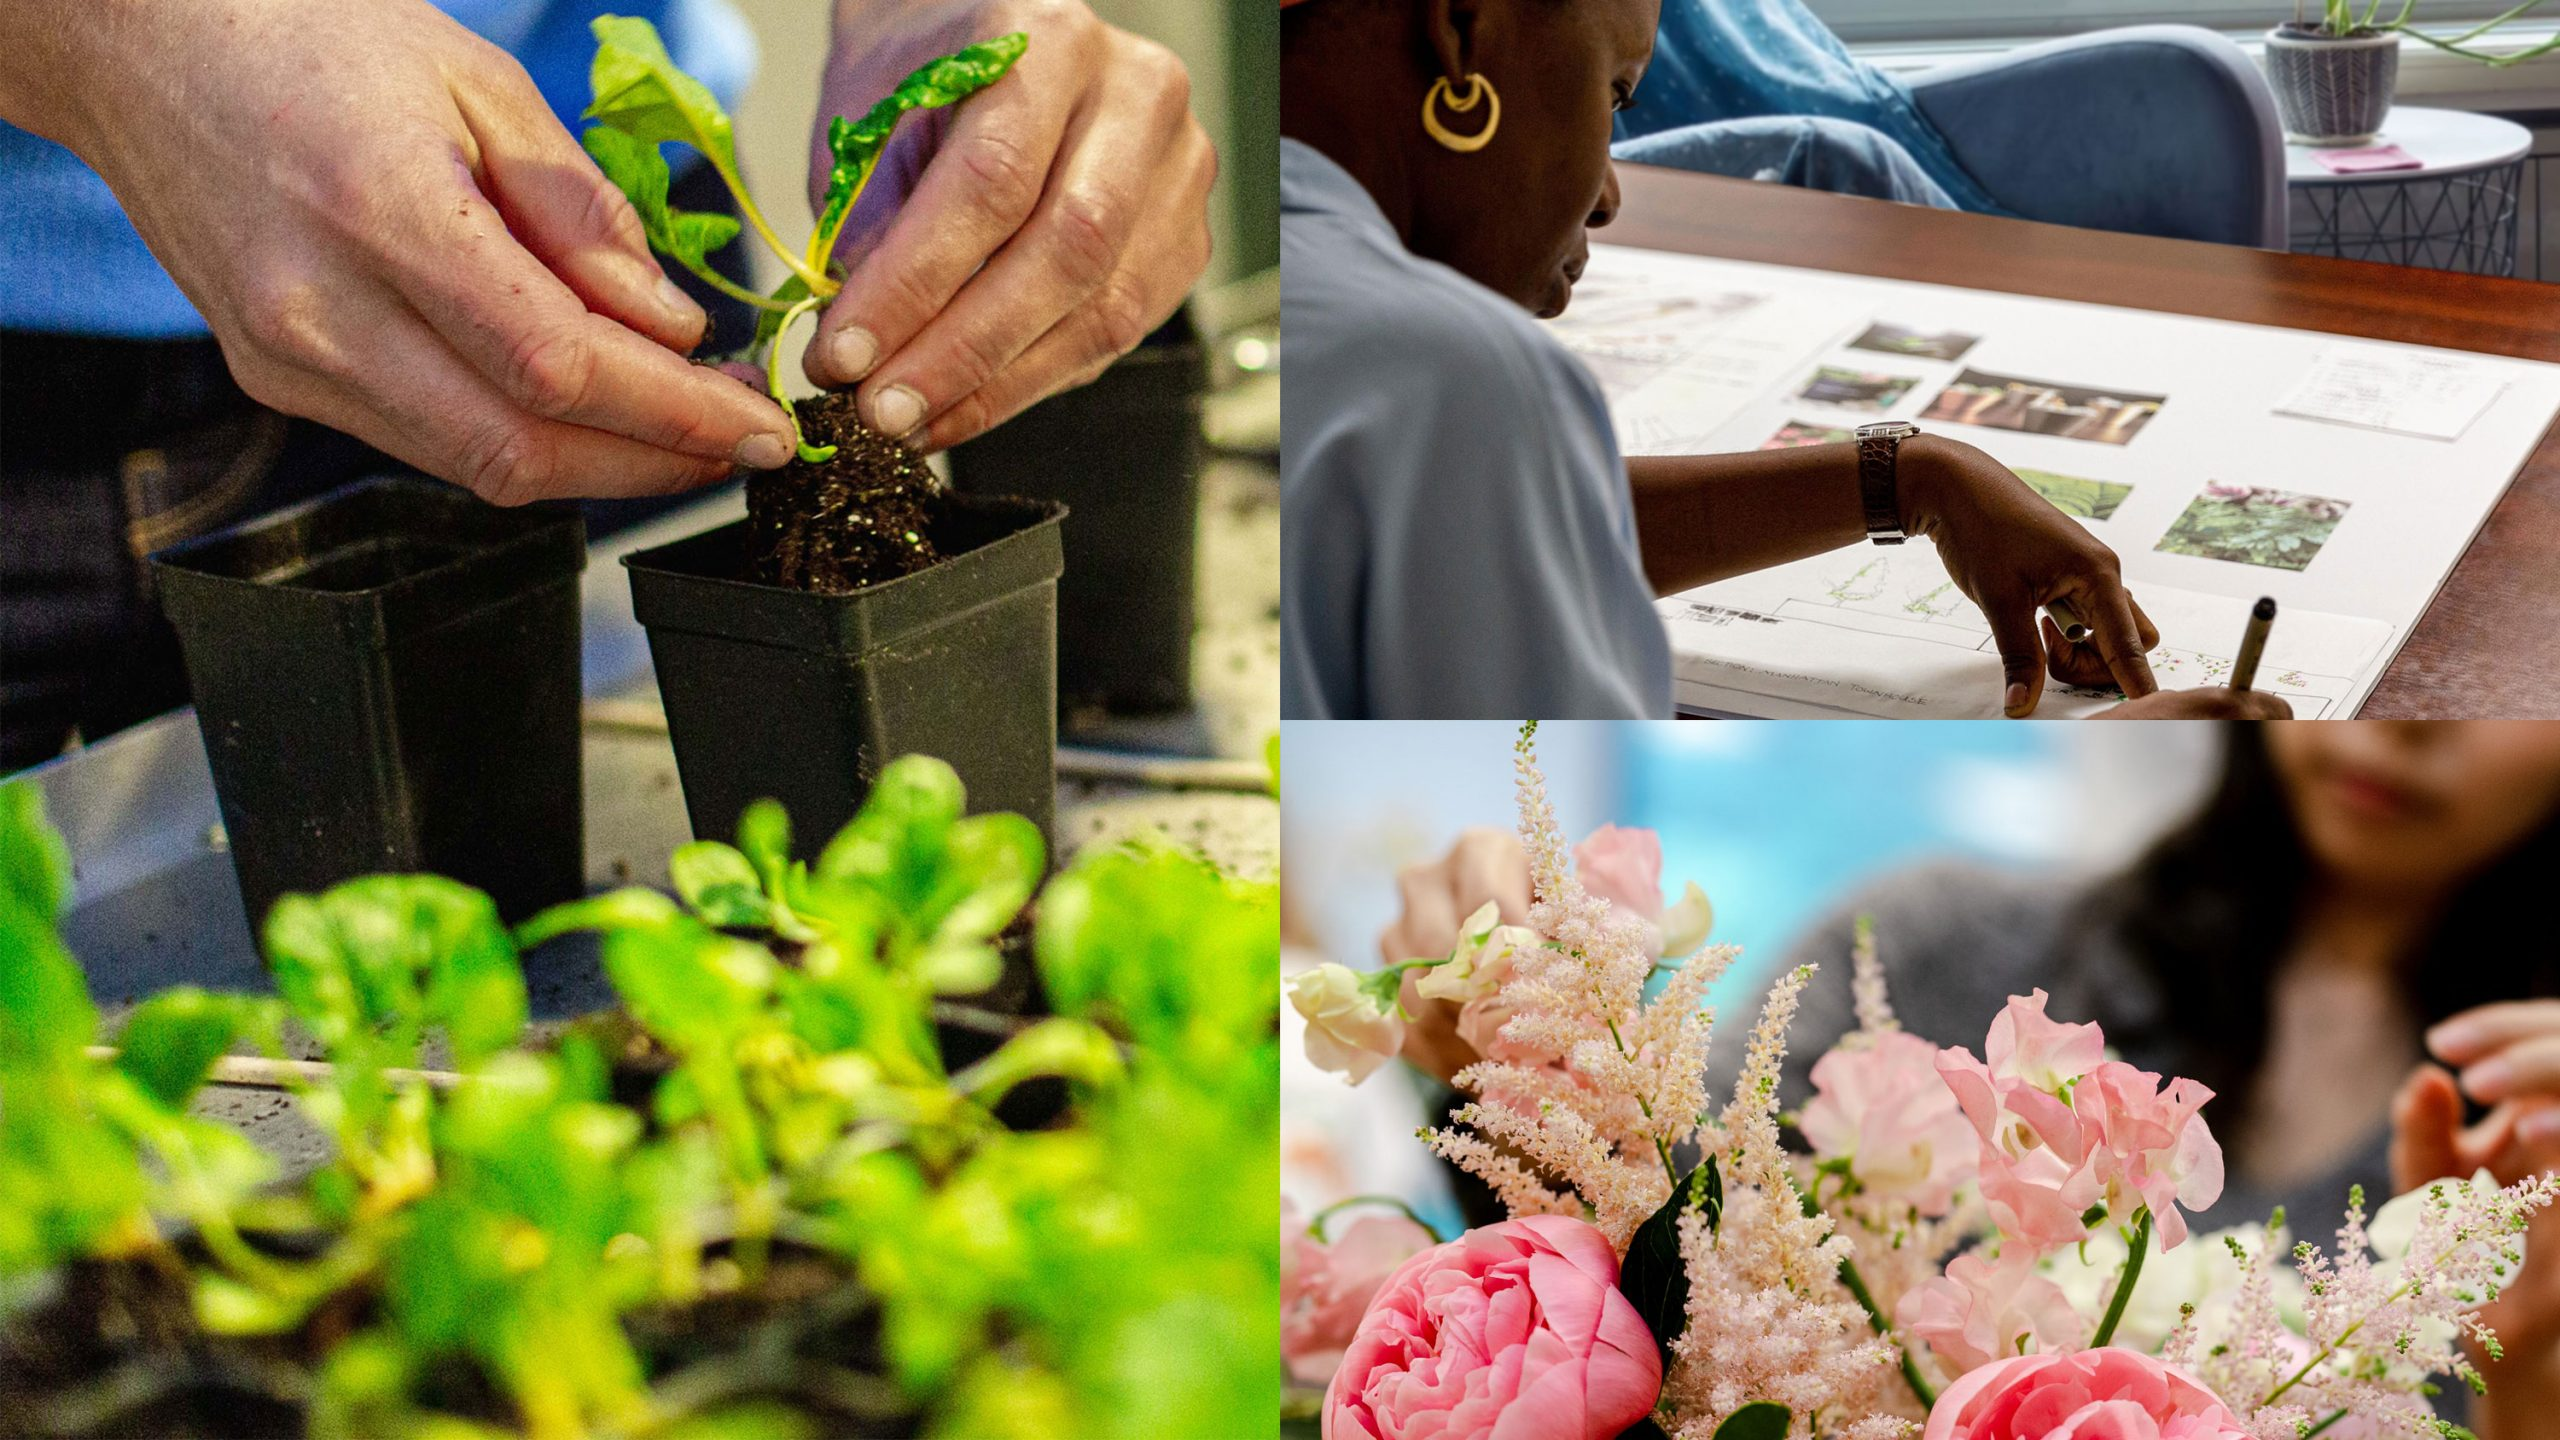 Grid of three images, hands planting small plant in pot, a woman drawing on a landscape design, and a woman standing behind pink floral arangment